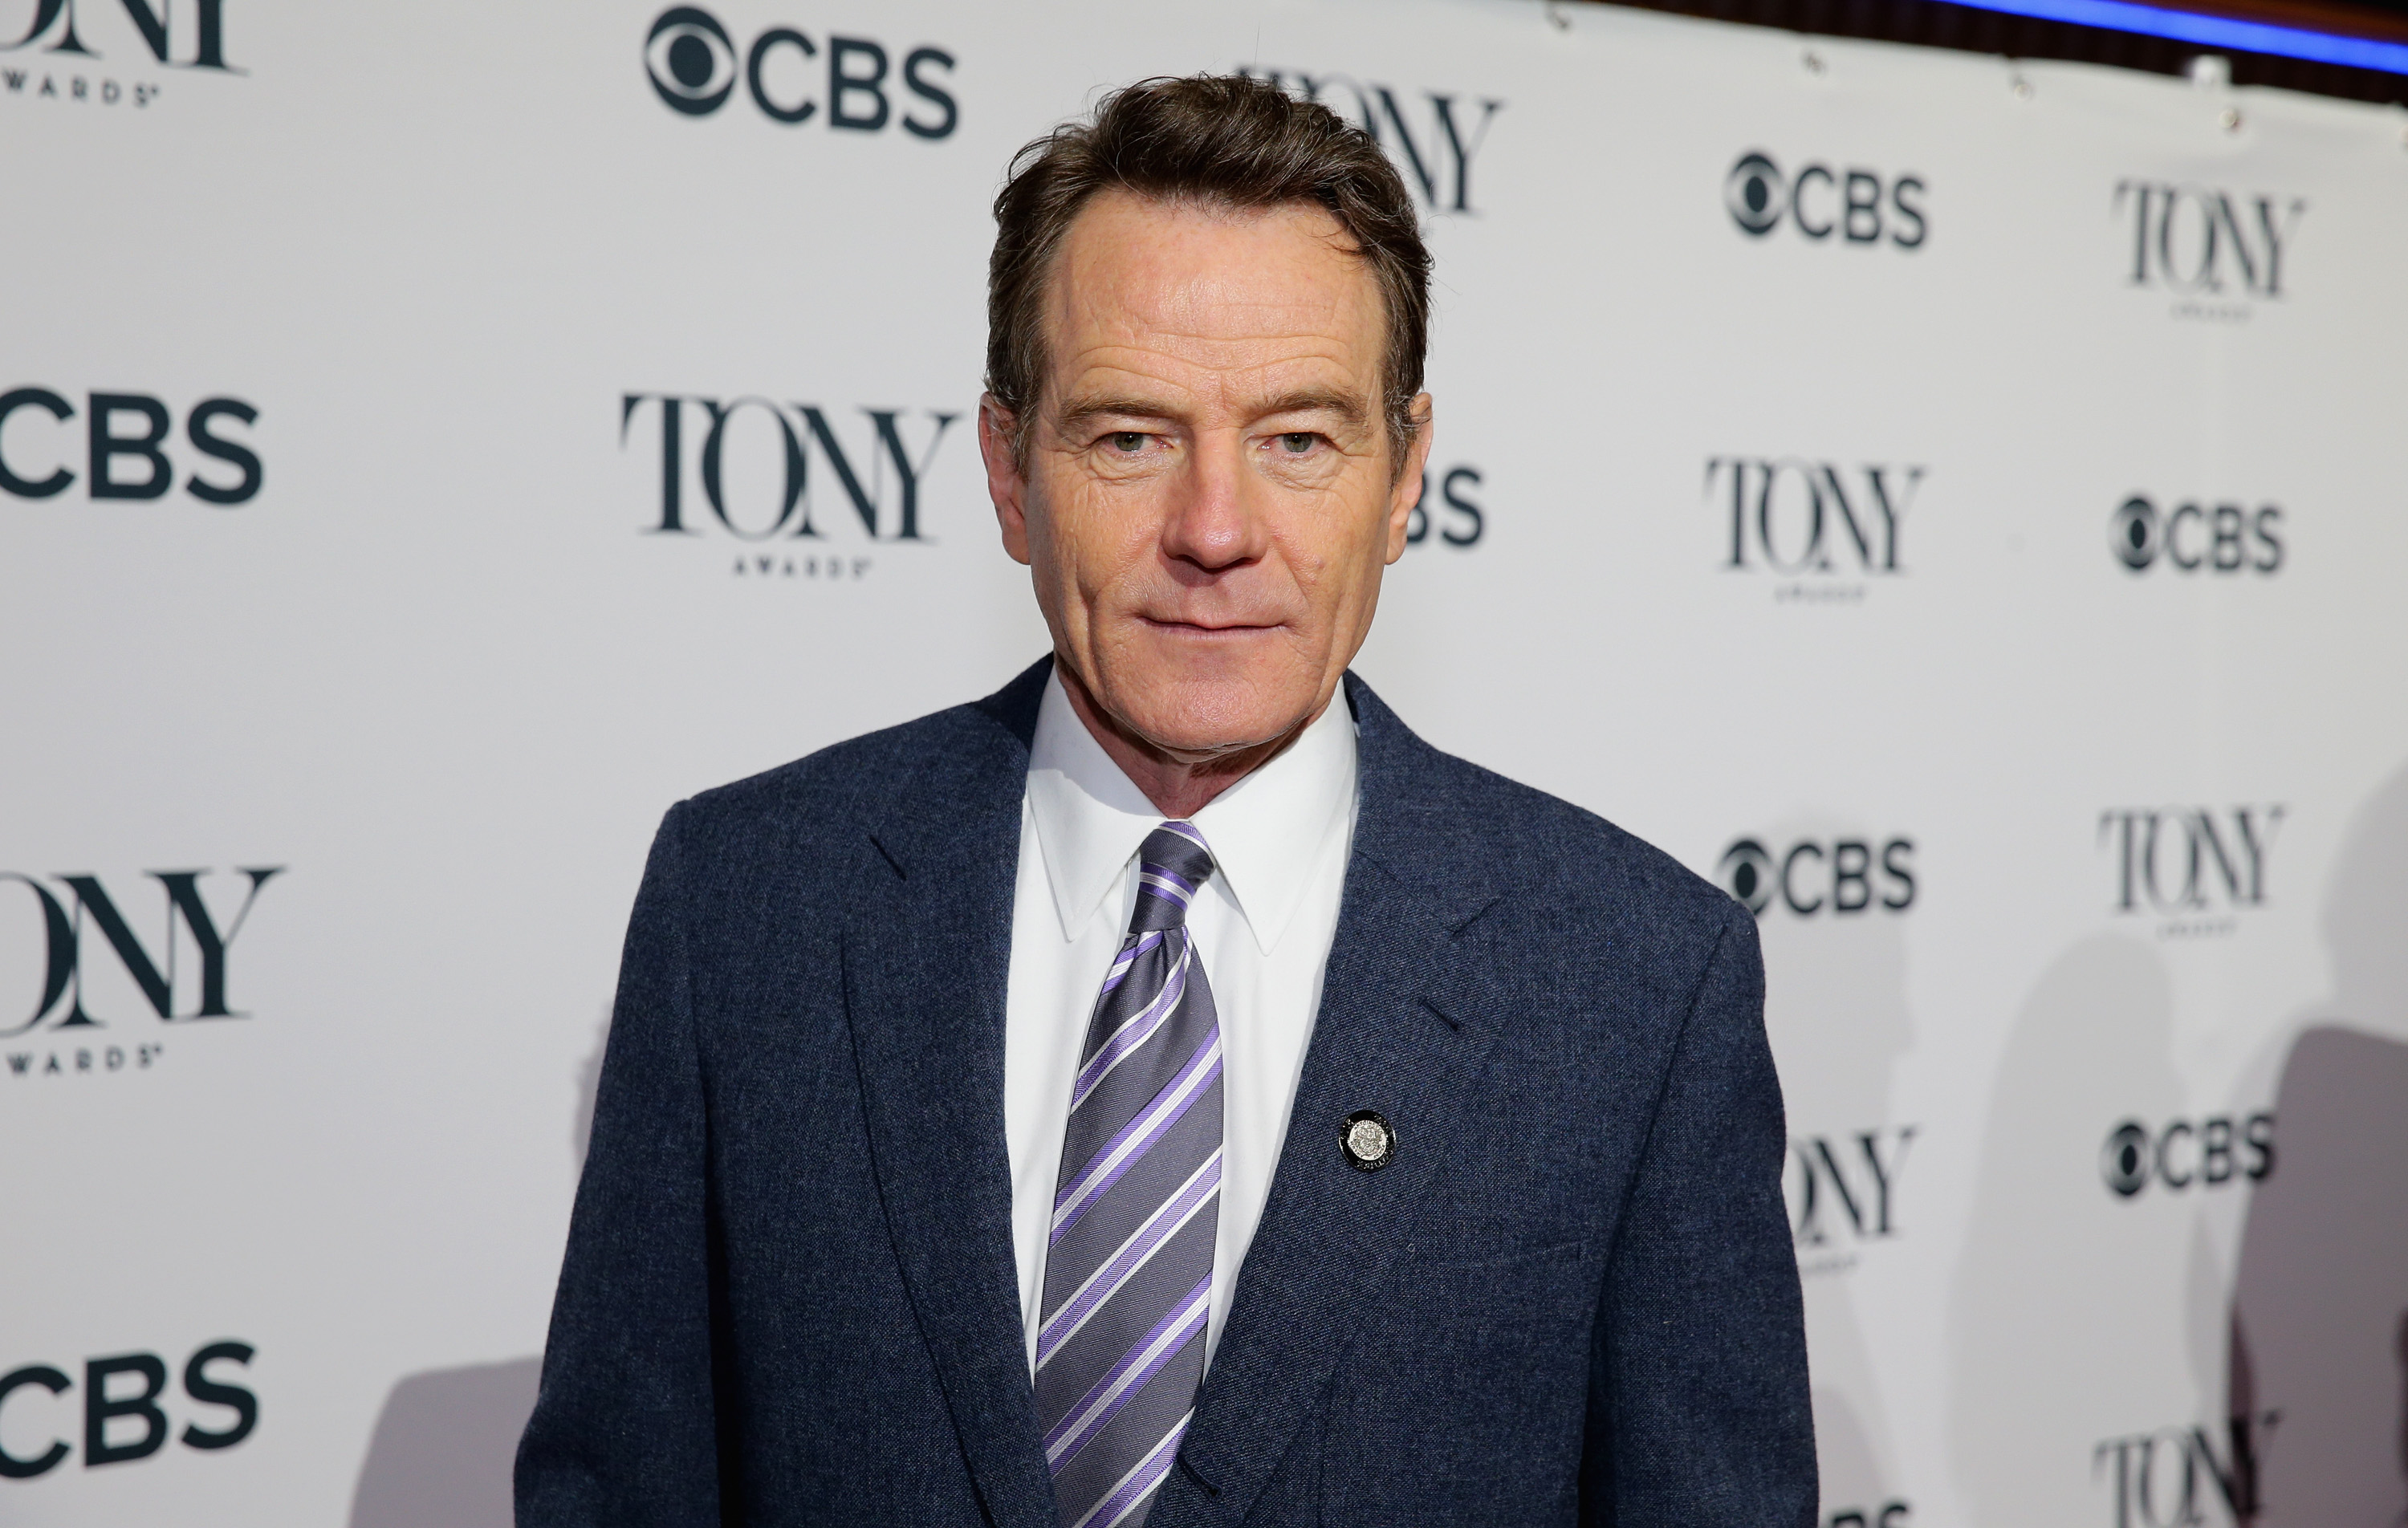 Bryan Cranston defends decision to play disabled millionaire in The Upside amid debate